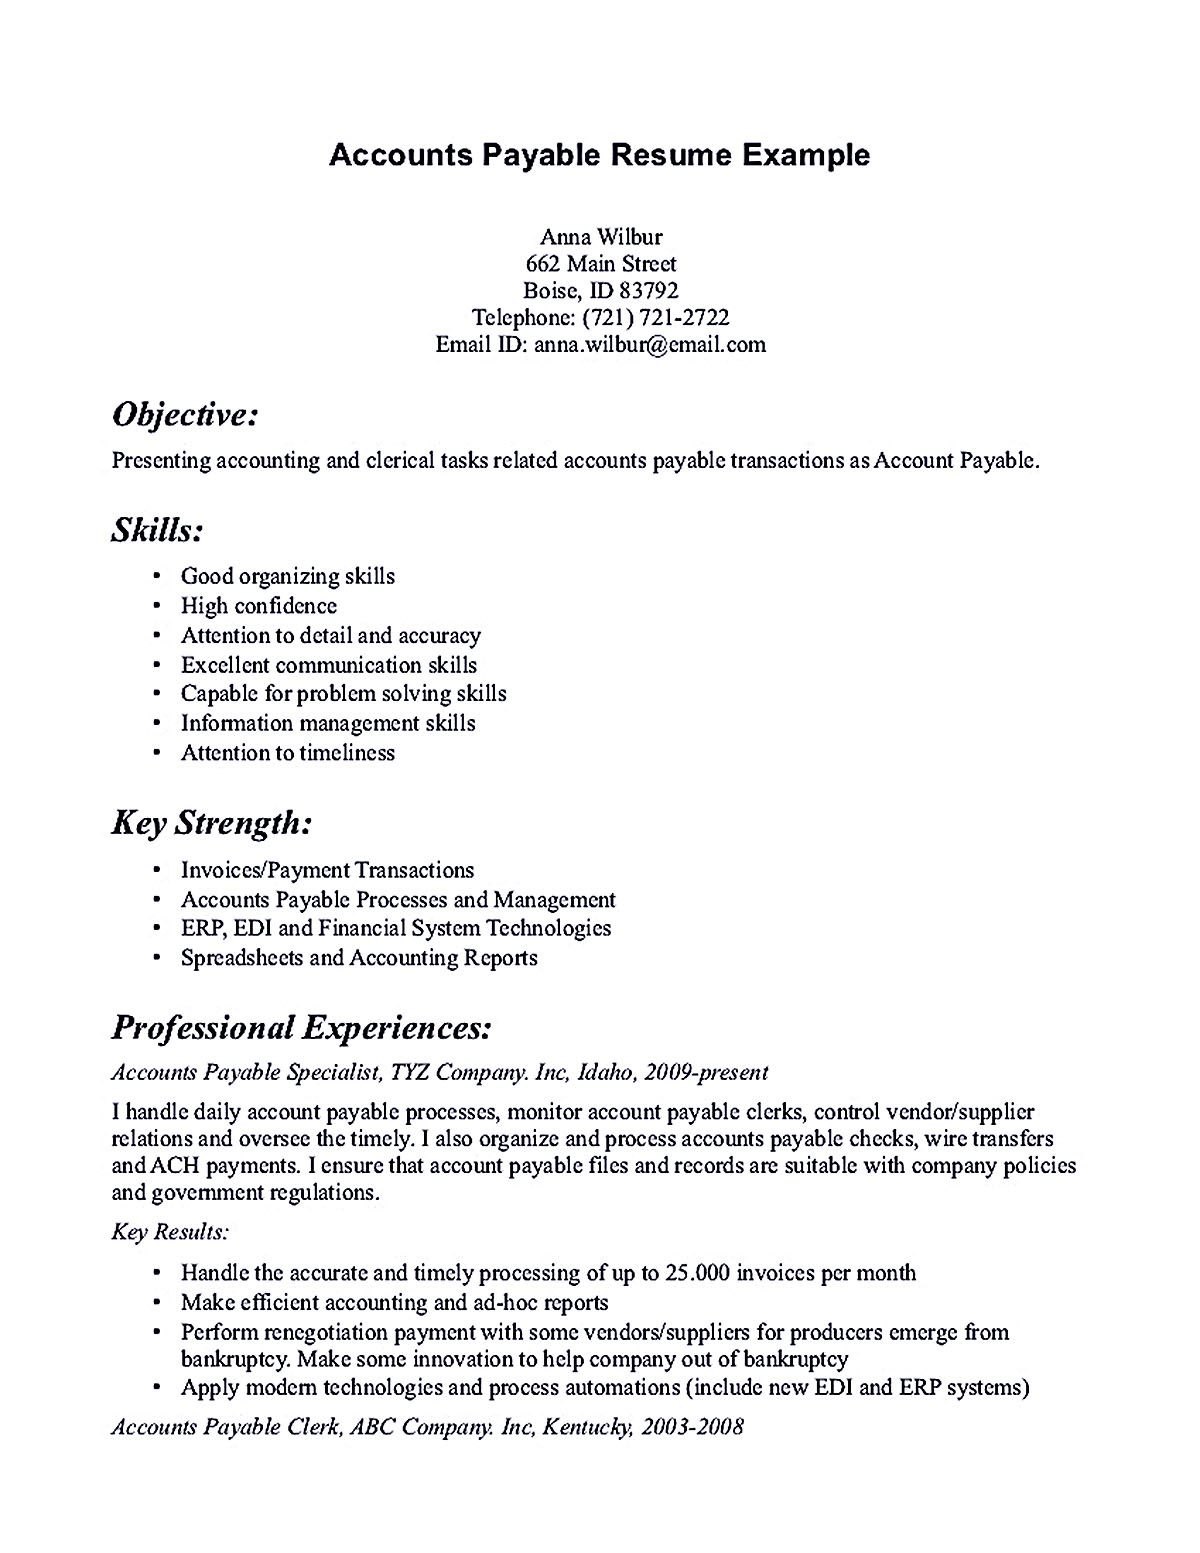 Professional Summary Resume Delectable Account Payable Resume Display Your Skills As Account Payable Design Inspiration